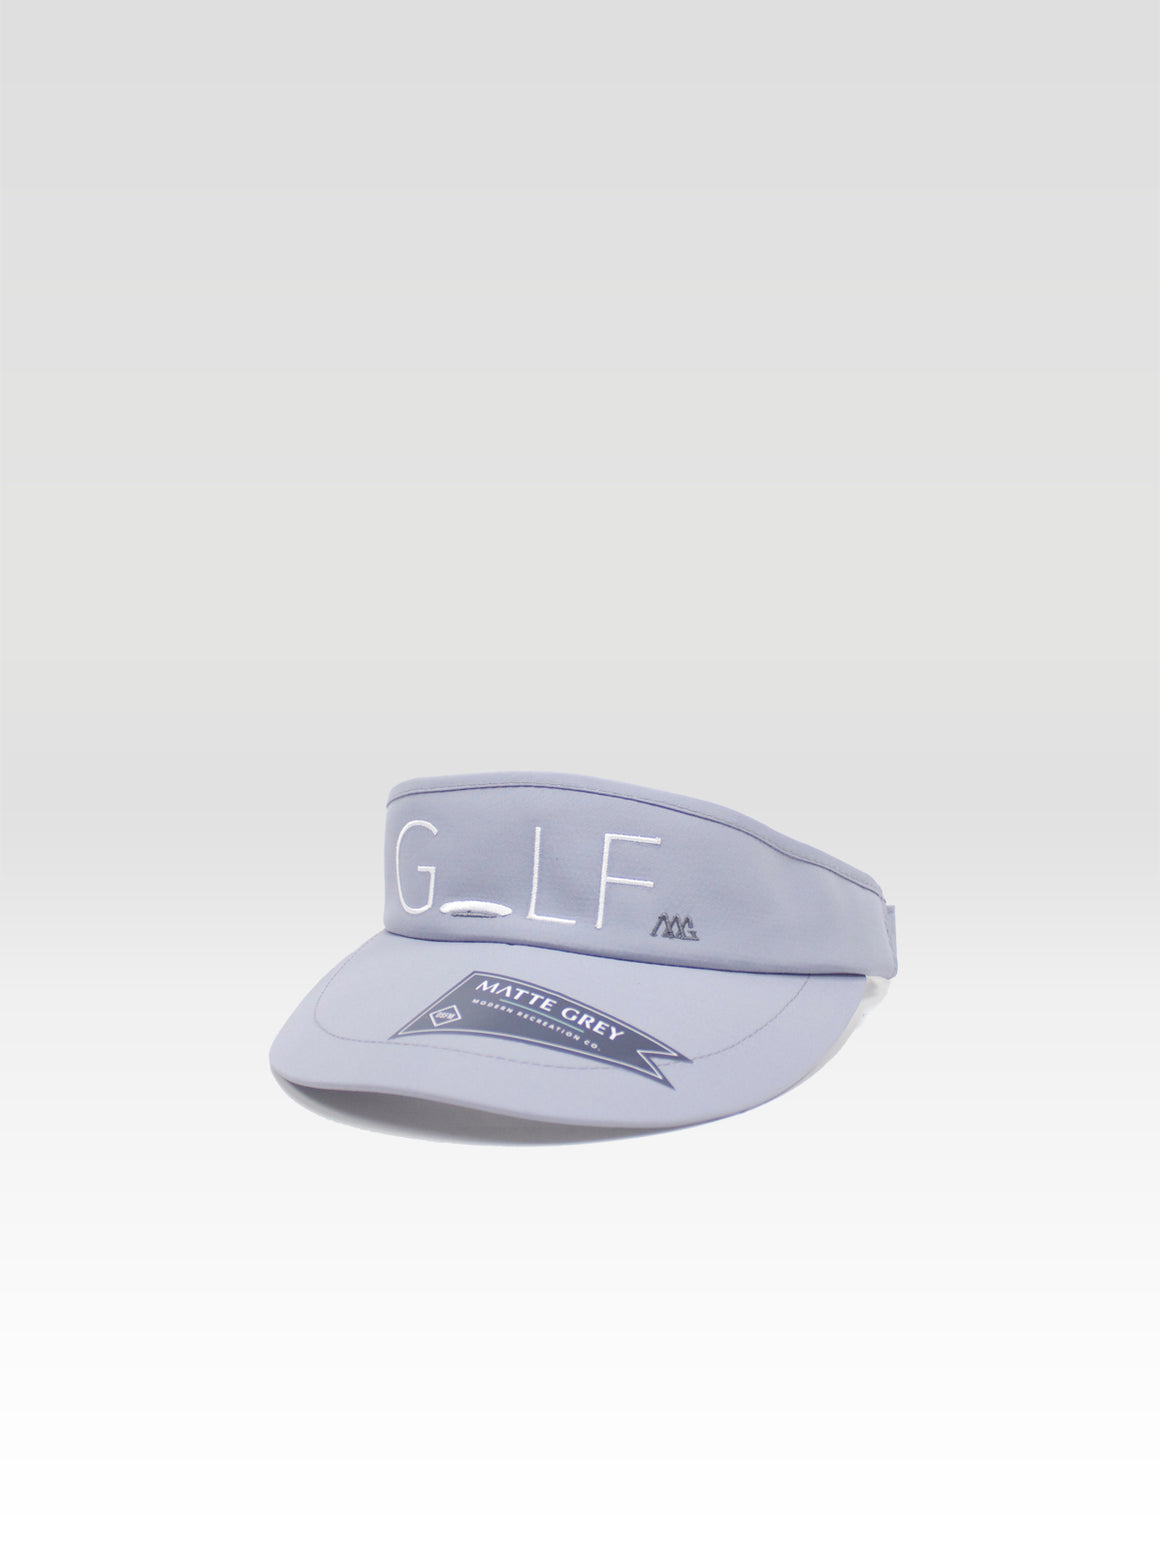 Hole-In-One Visor - Frost Grey (White)